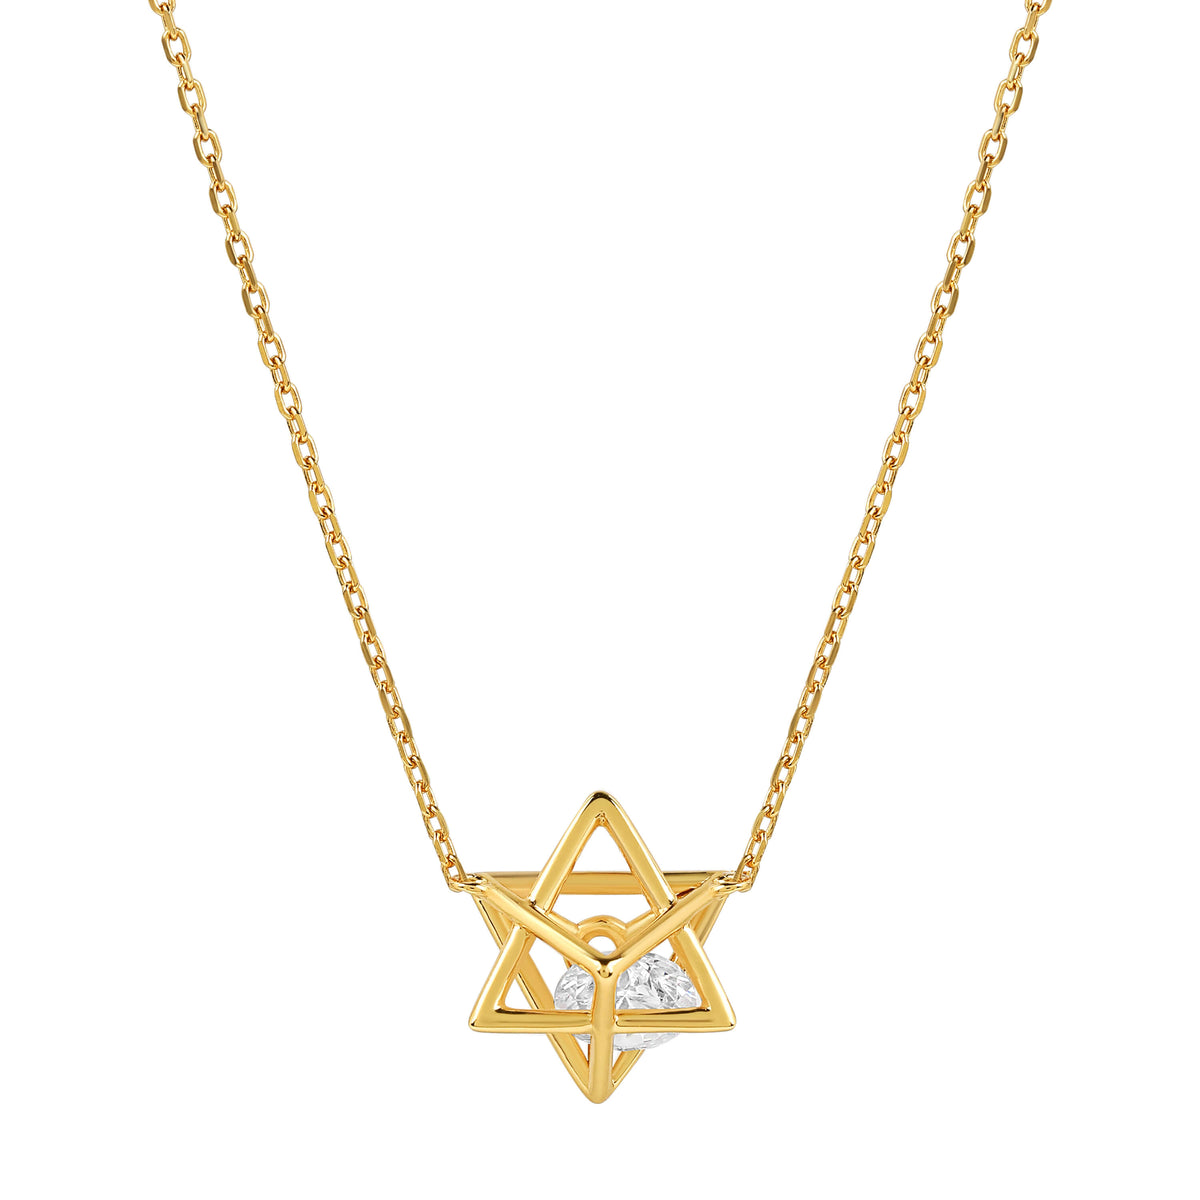 Special Edition - Merkaba Necklace